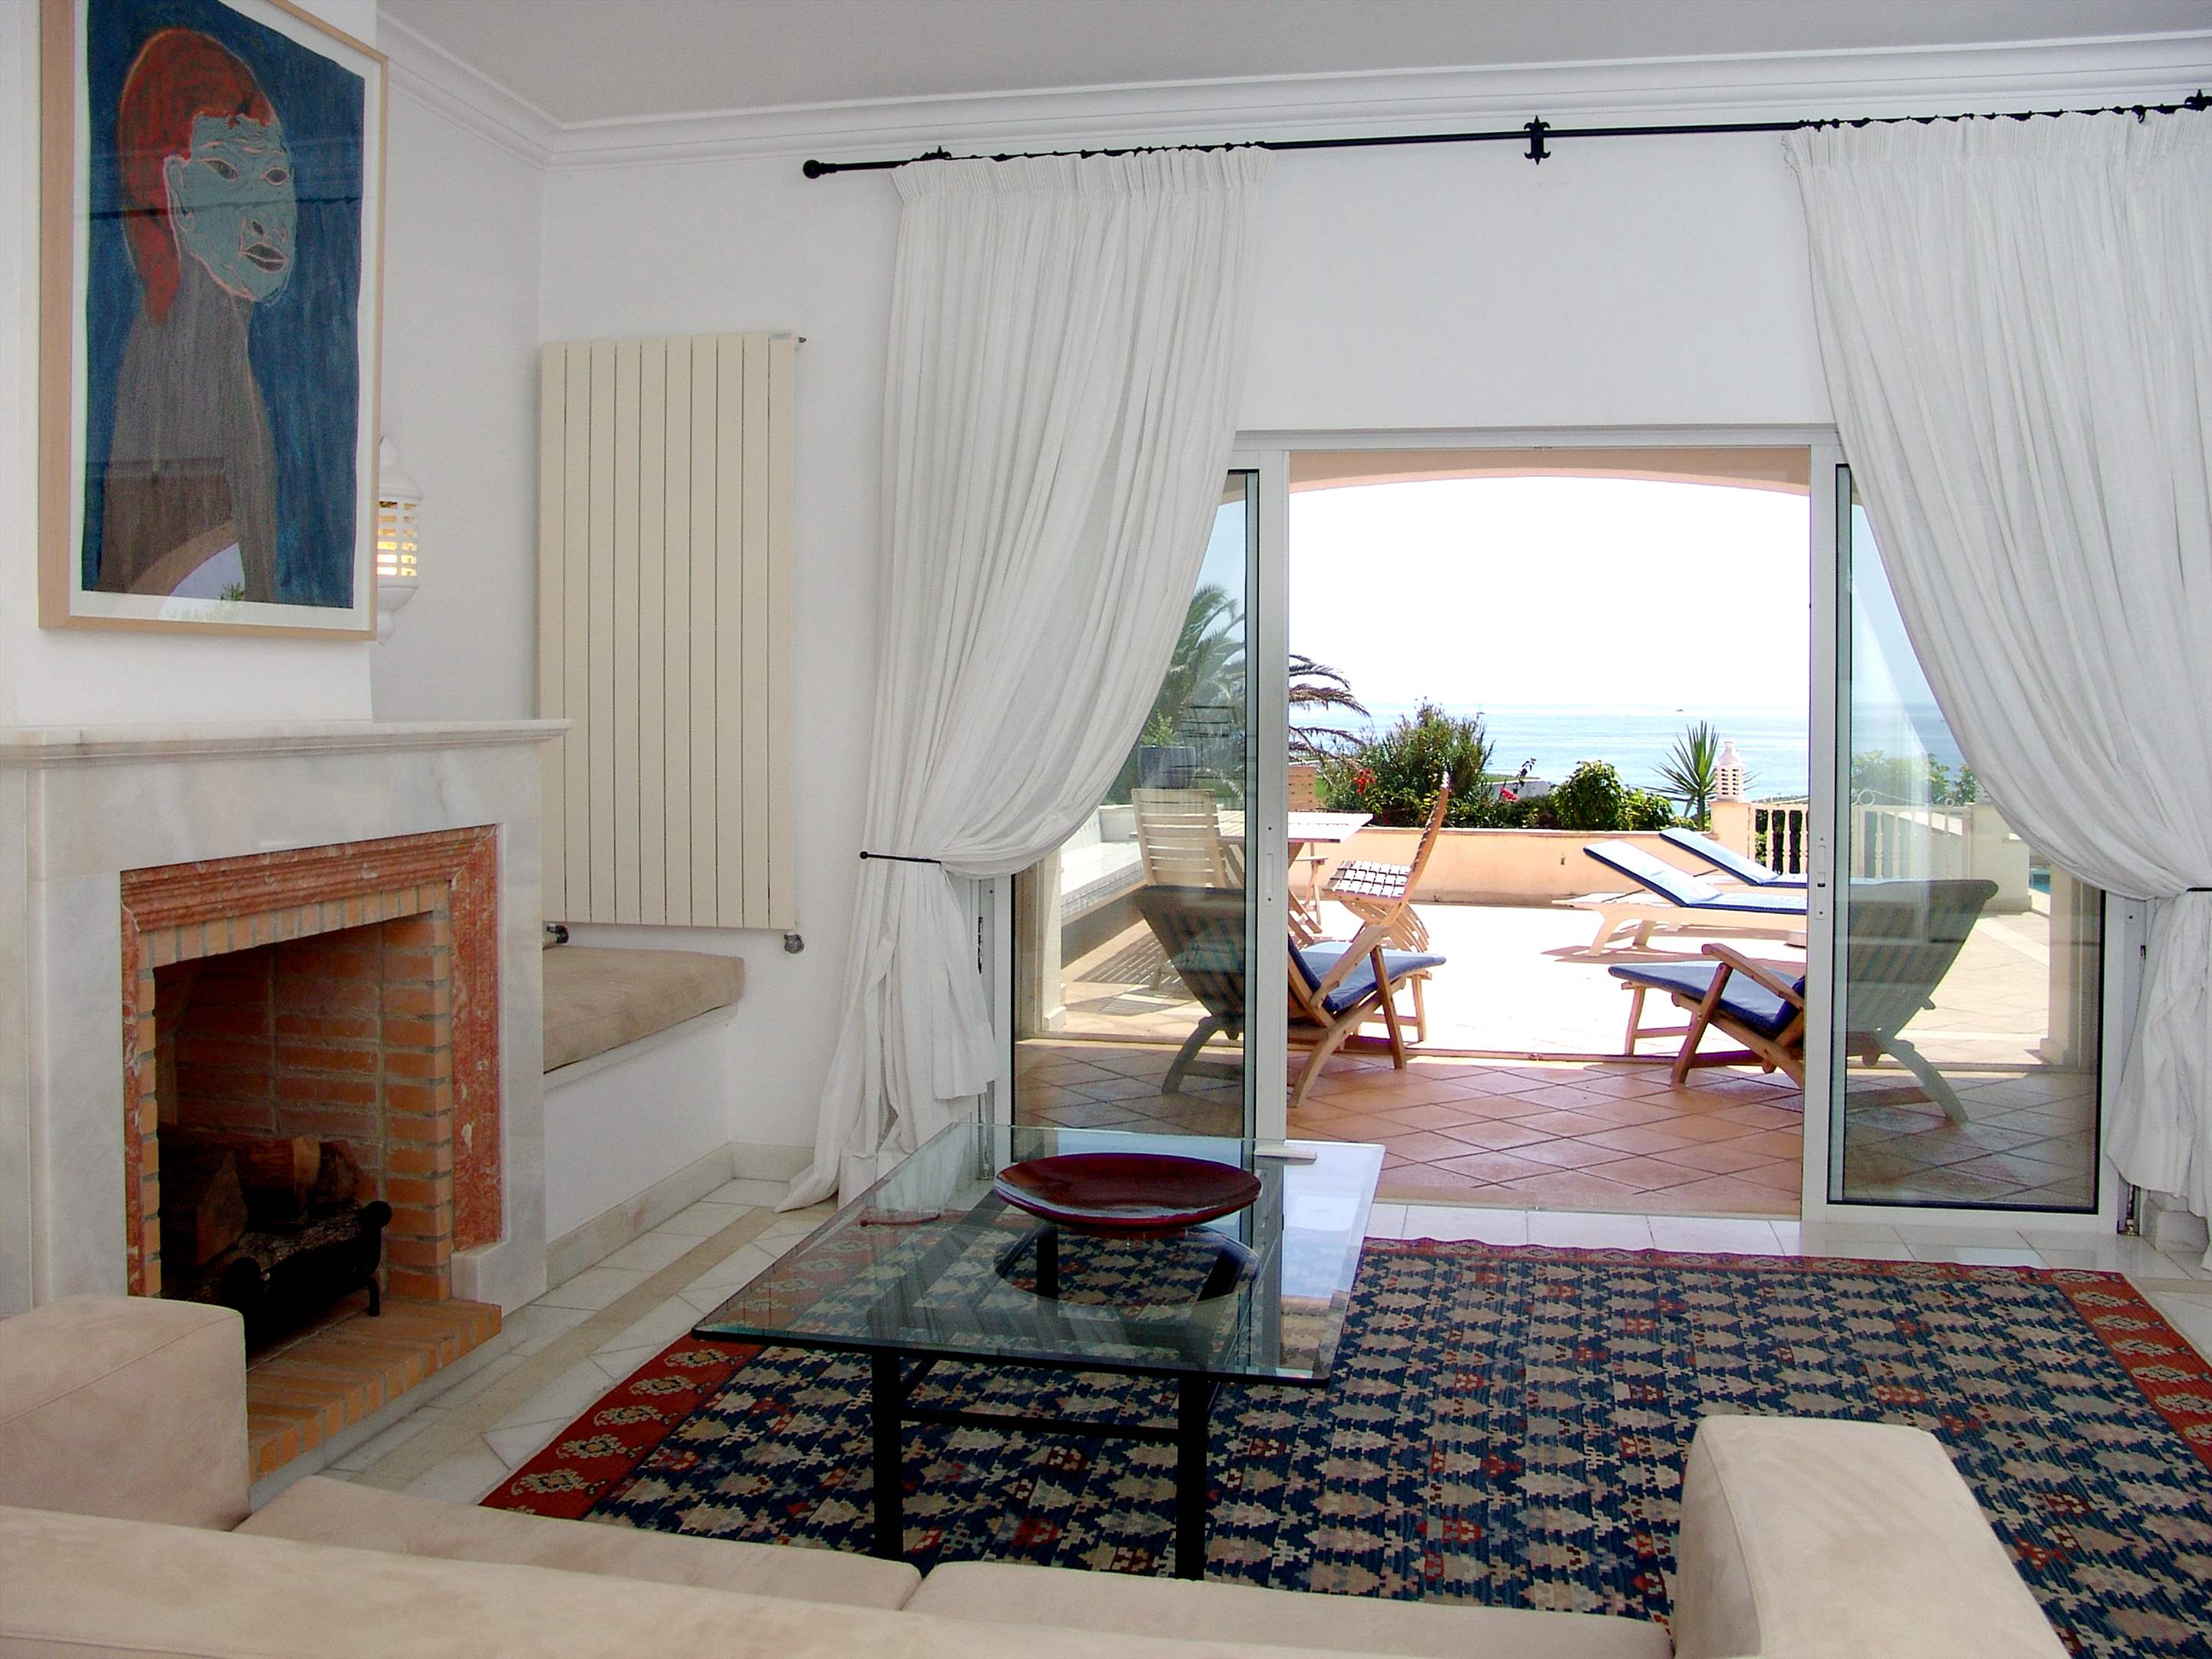 Villas Louisa, 4 Bedroom, 4 bedroom villa in Vale do Lobo, Algarve Photo #6